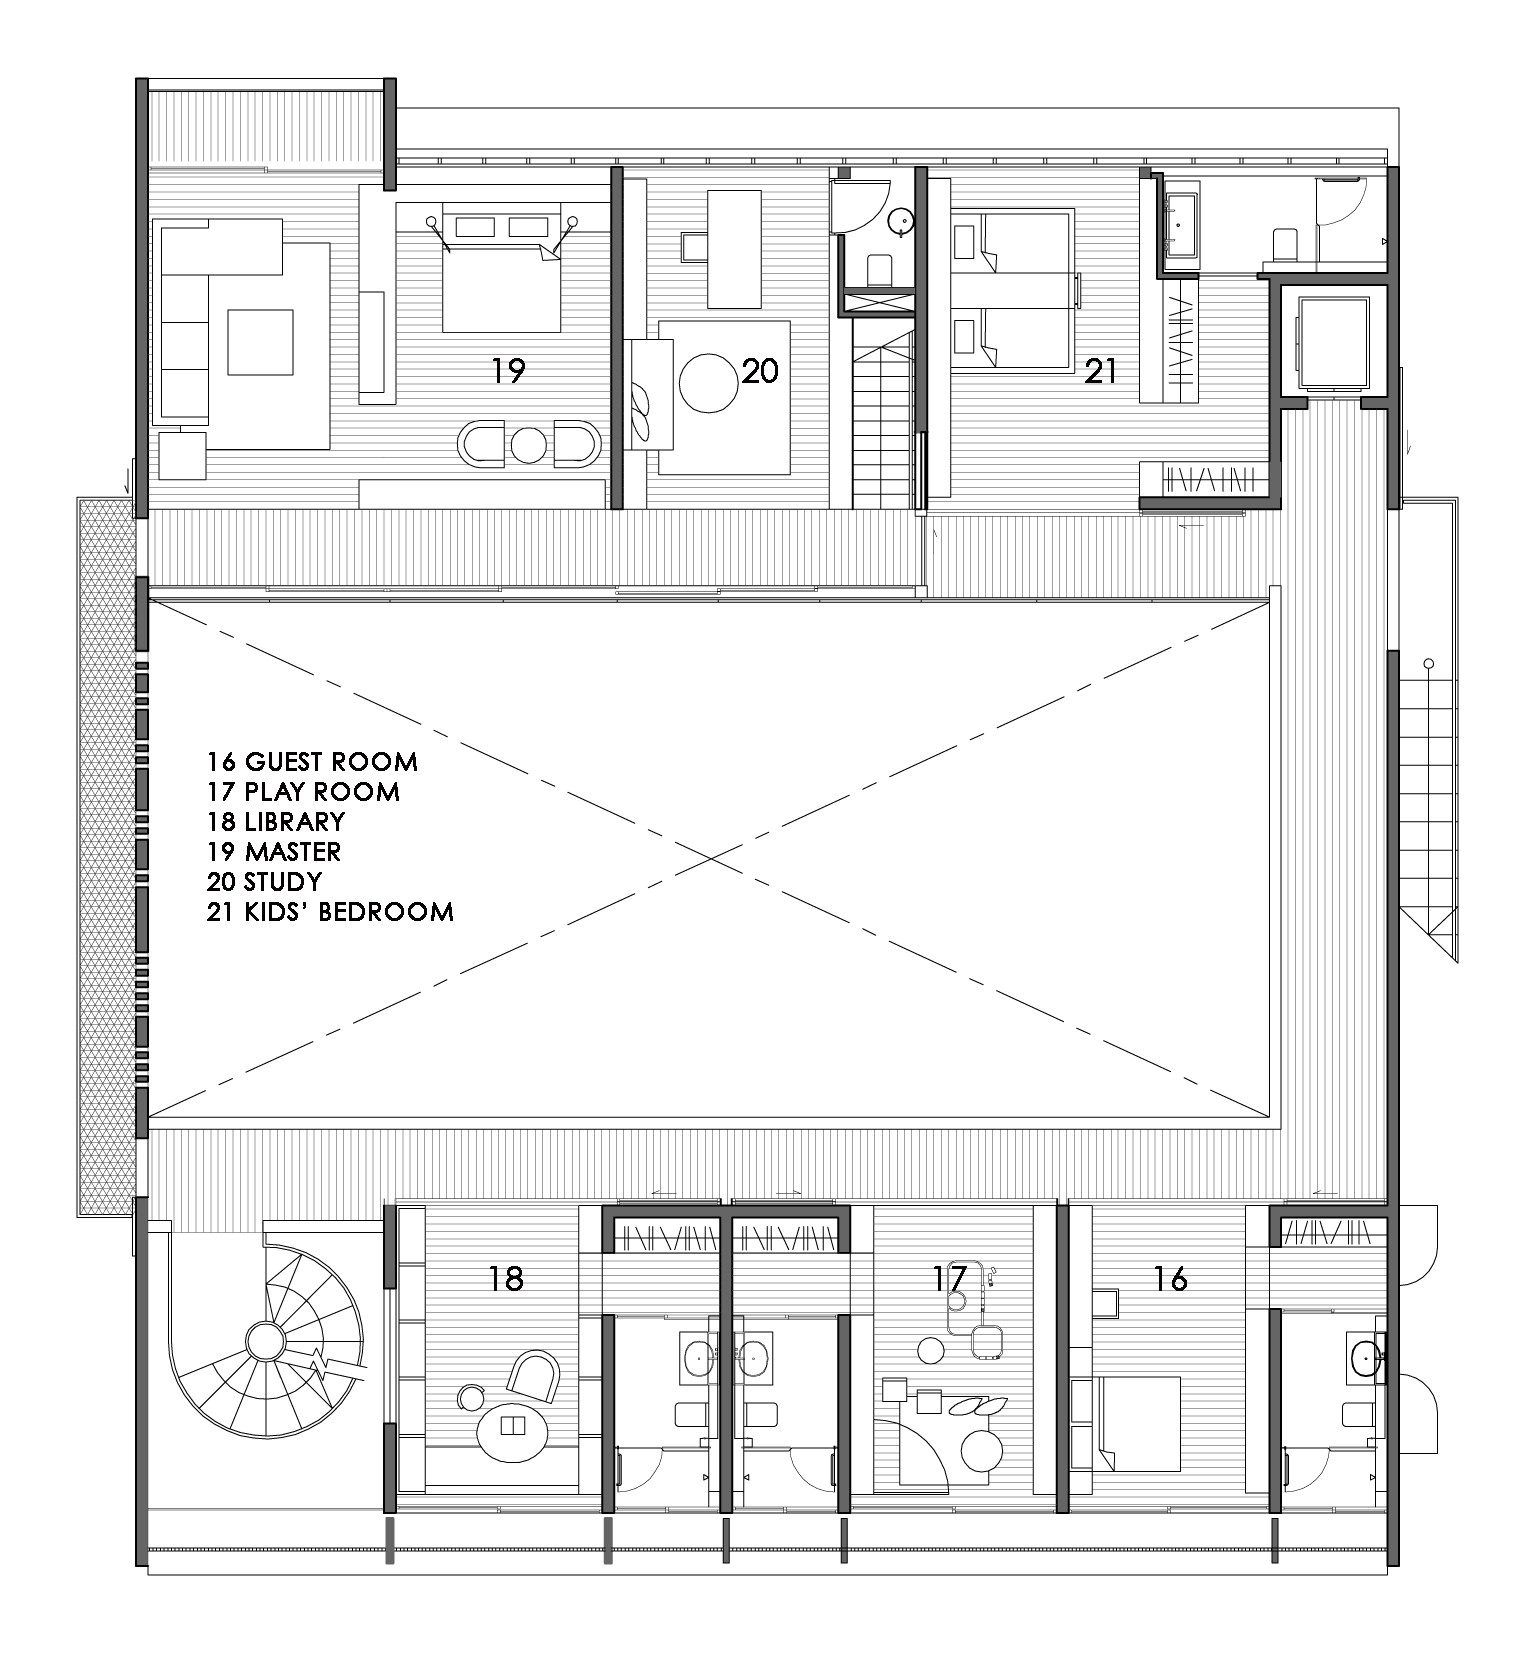 2nd Floor House Plans Gallery Of The Courtyard House Formwerkz Architects 13